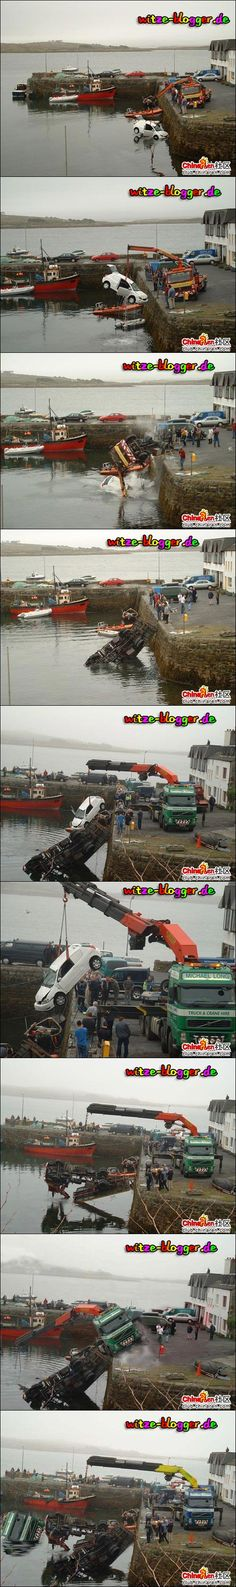 crazy crane accidents...